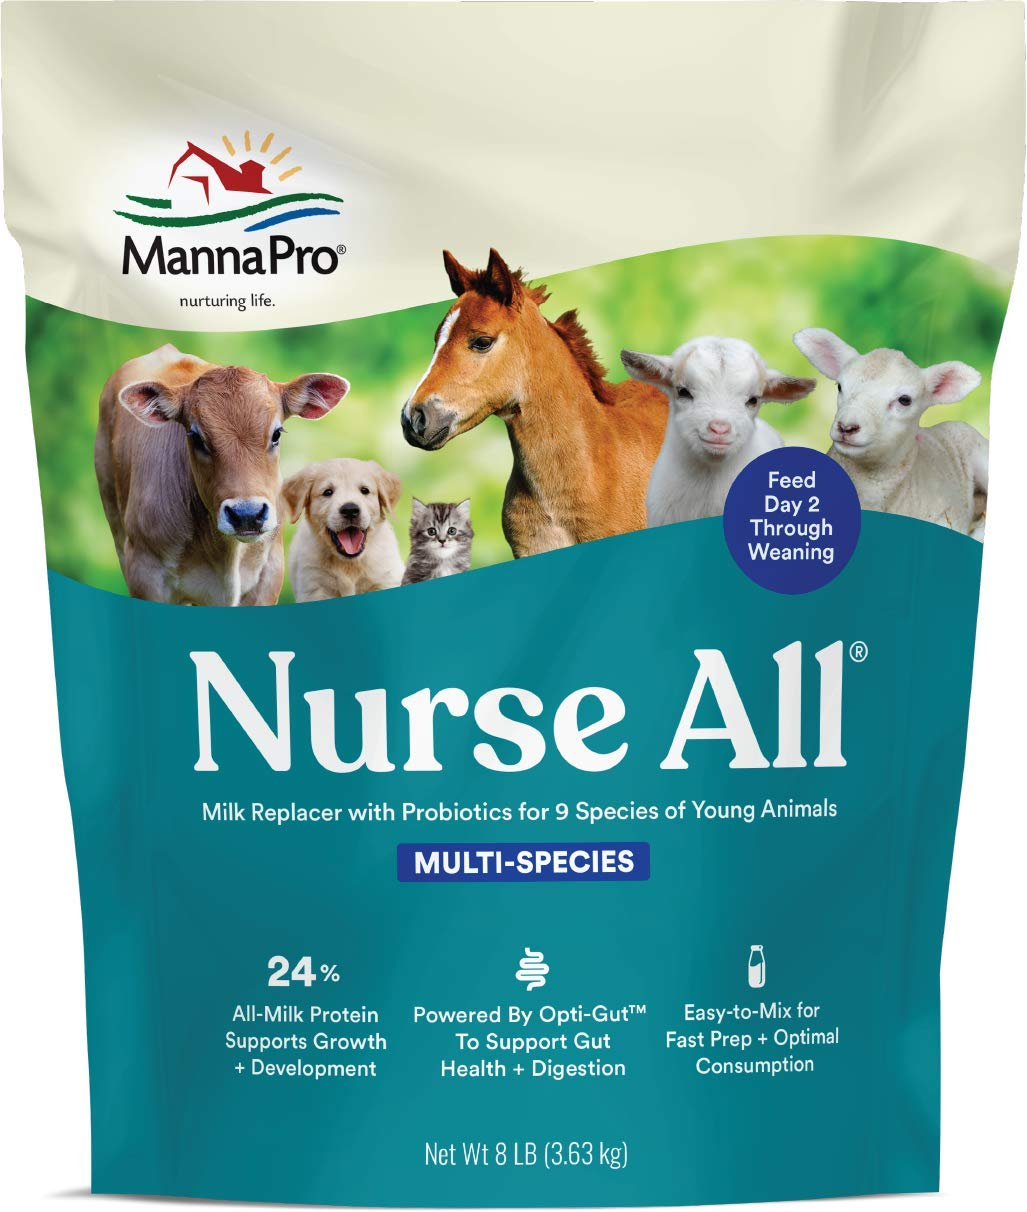 Manna Pro Nurse All Multi Species Milk Replacer with Probiotics for Horses   Formulated with All-Milk Protein to Promote Growth and Development   Helps Support Healthy Gut and Digestions  8lbs